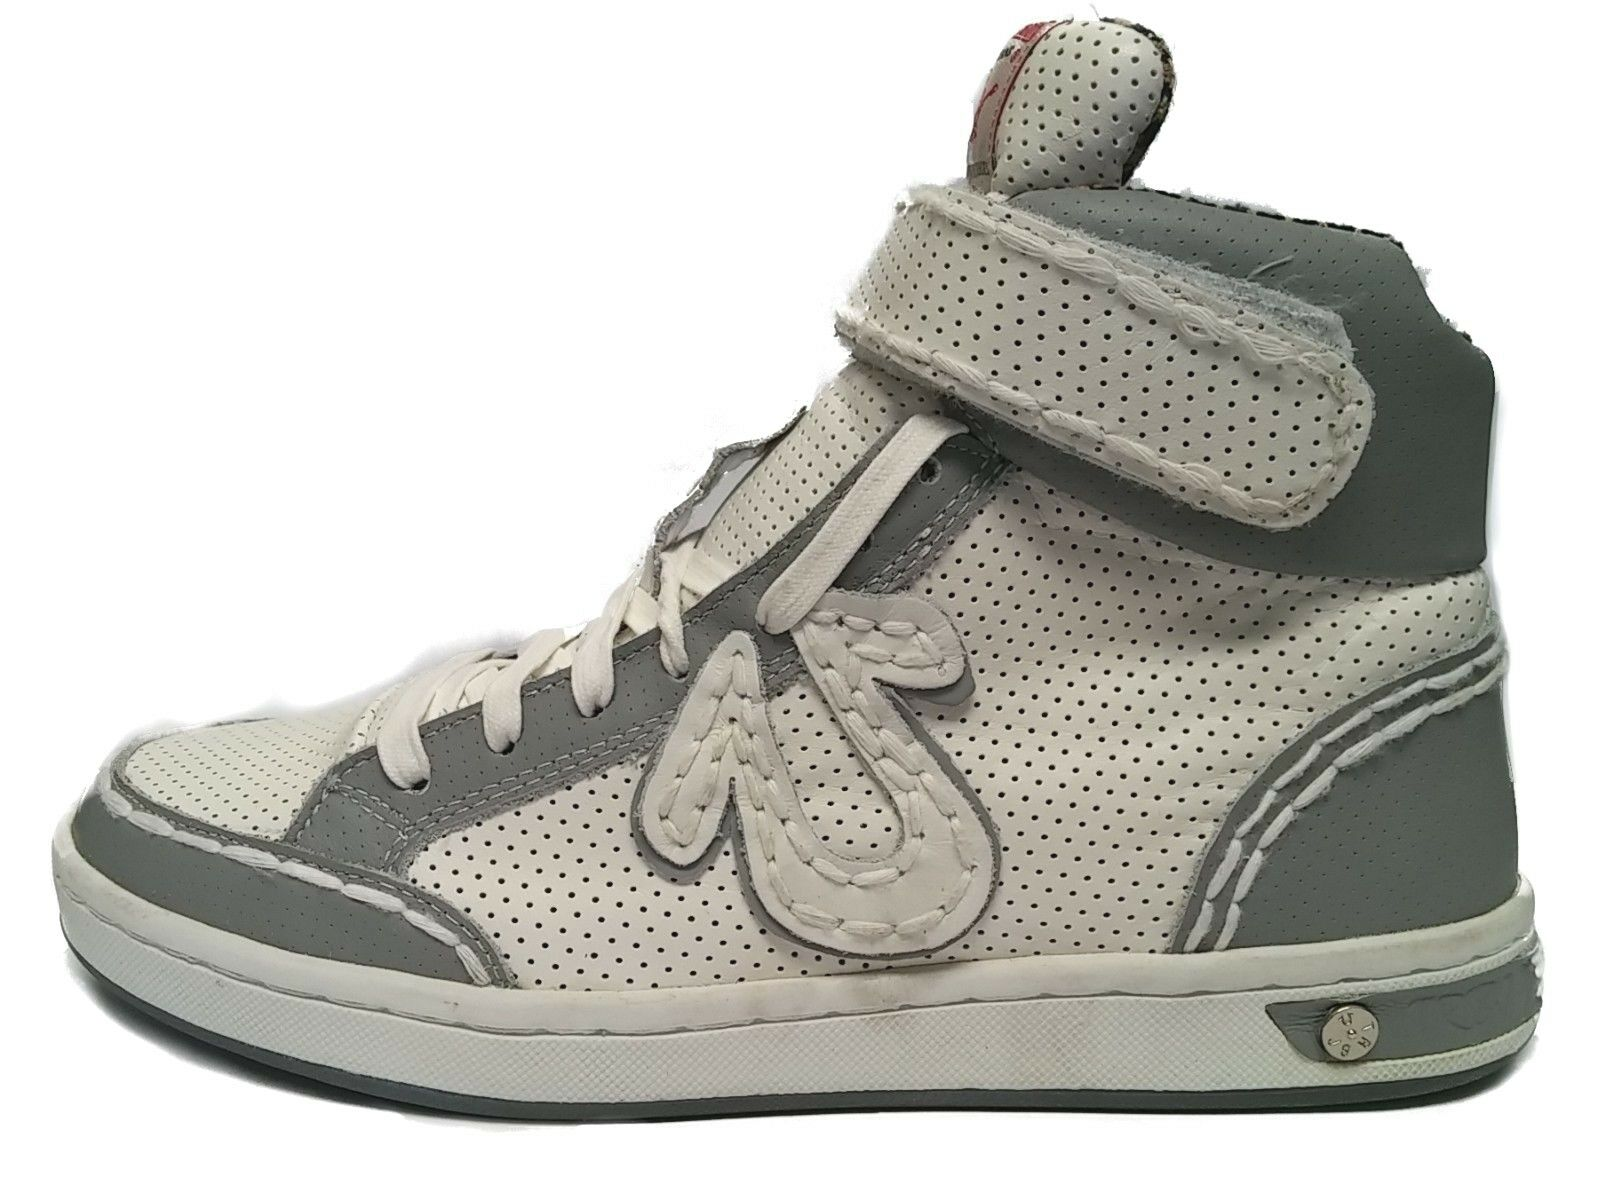 TRUE RELIGION TR142103-03W TR142103-03W RELIGION CARSON PERF Mn's (M) White/Grey Pelle Casual Shoes 6fd546